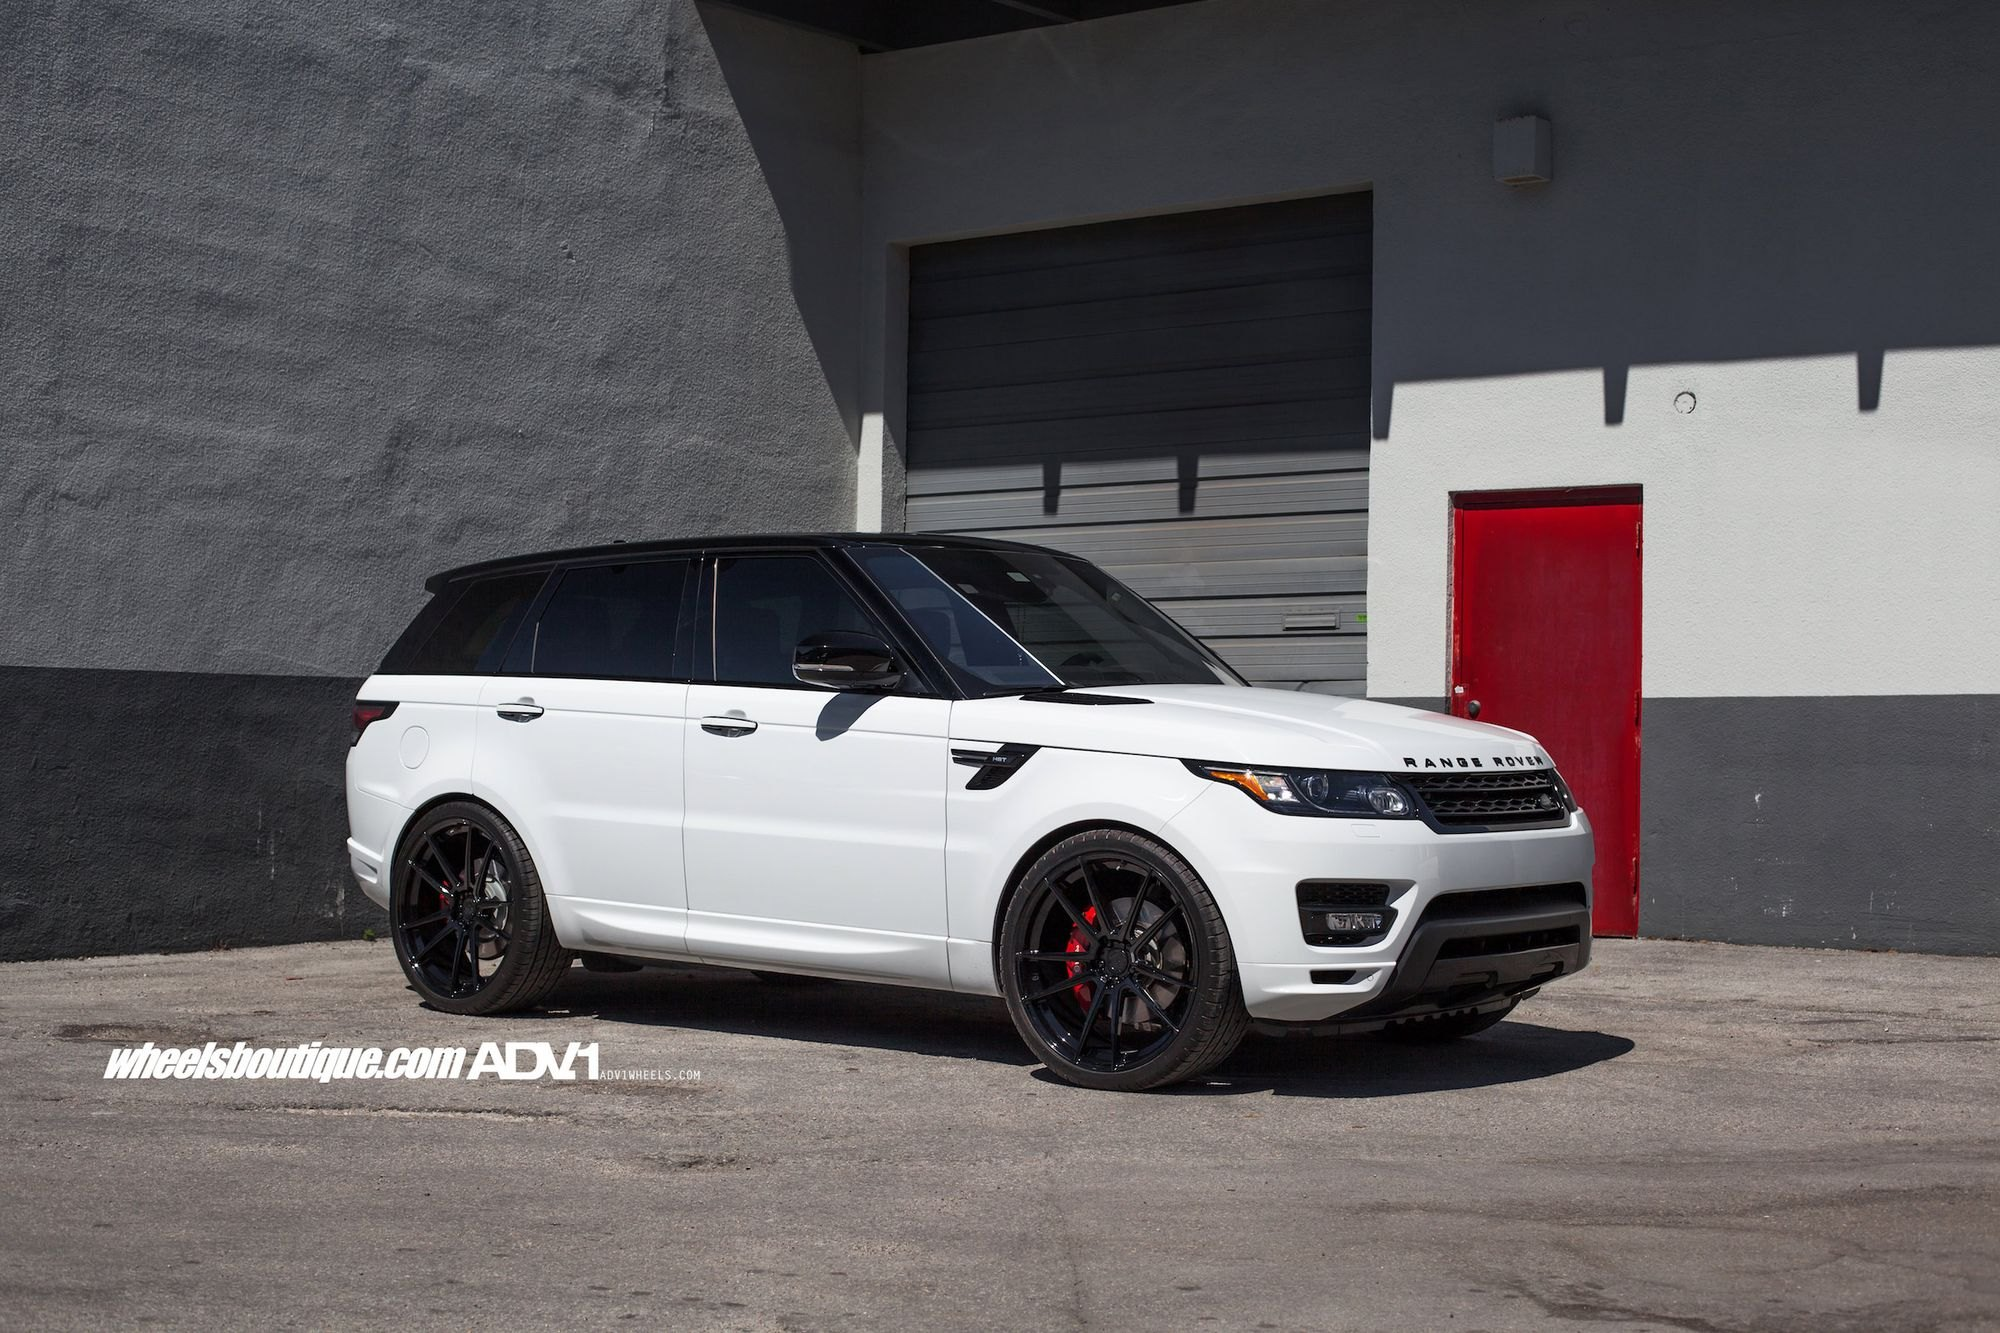 Black And White Ballance in Range Rover Sport by ADV1 — CARiD